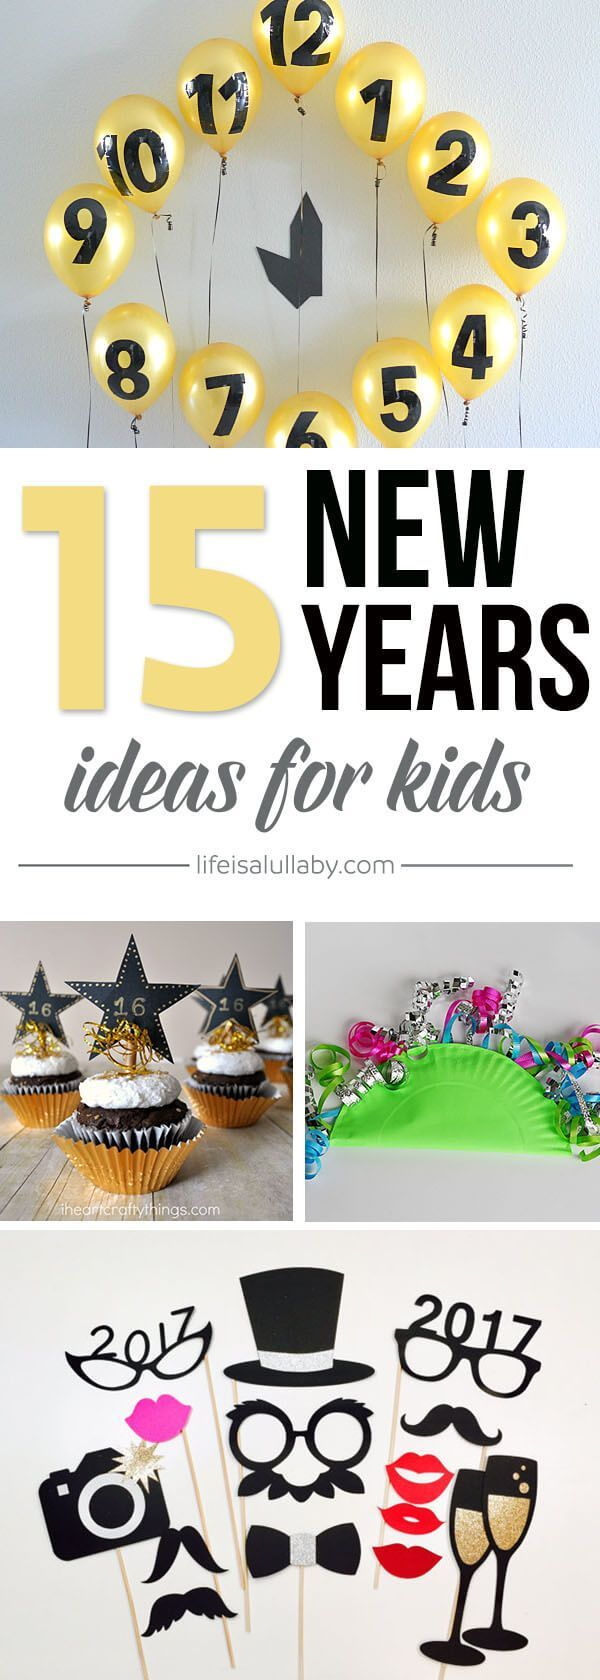 These 15 New Years Eve Ideas for Kids are so much FUN! Such great ideas here to make a New Years Eve party for kids.